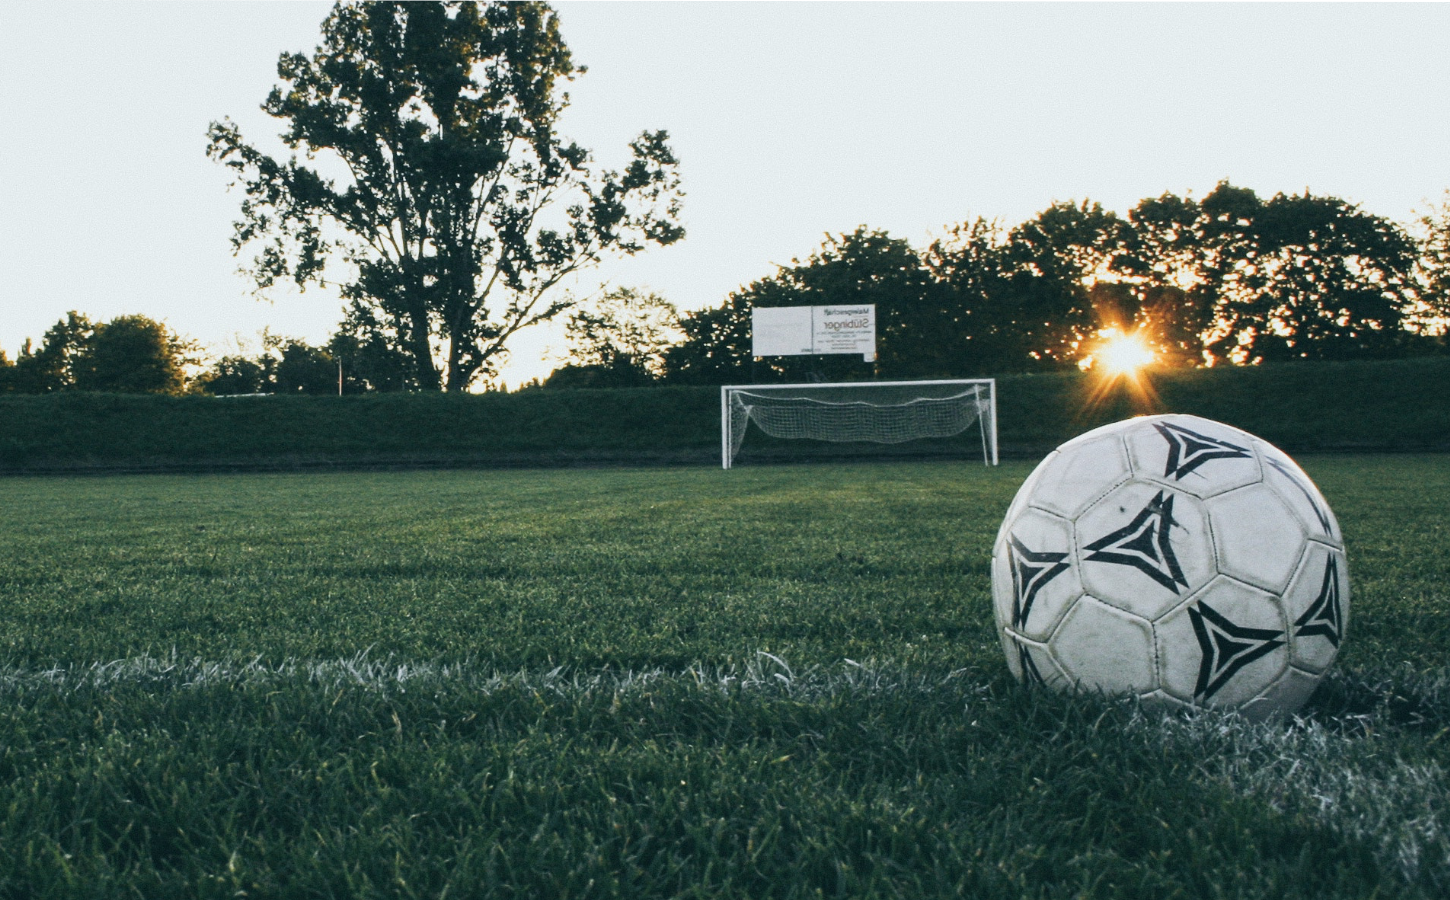 Homepage header image of soccer ball on a soccer field